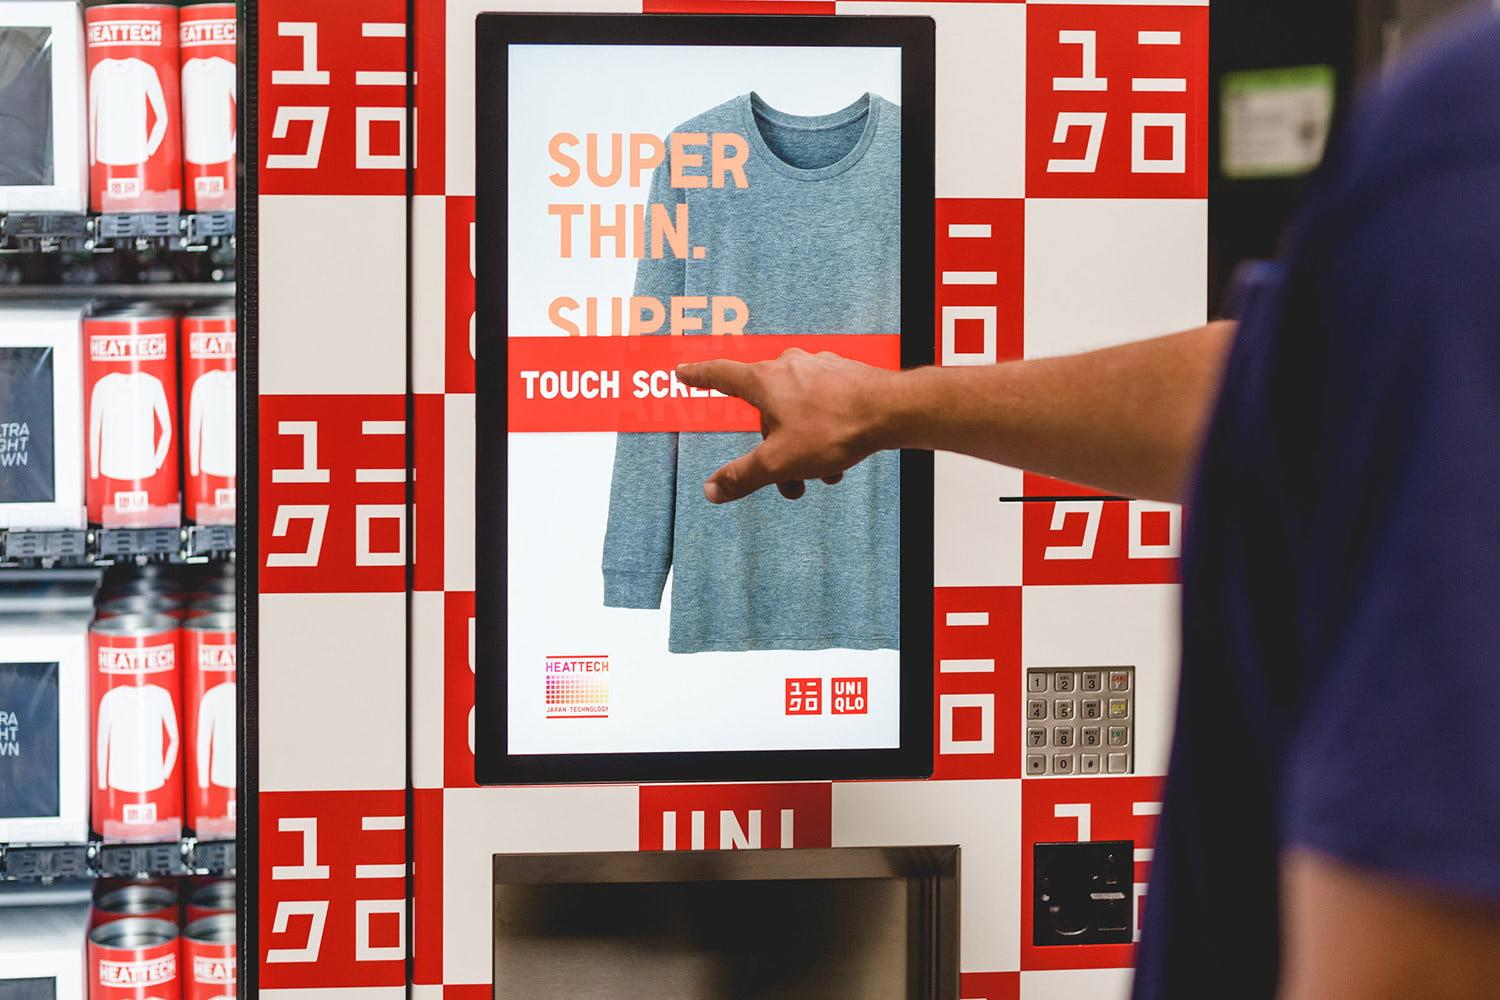 Uniqlo wants you to buy clothes from a vending machine